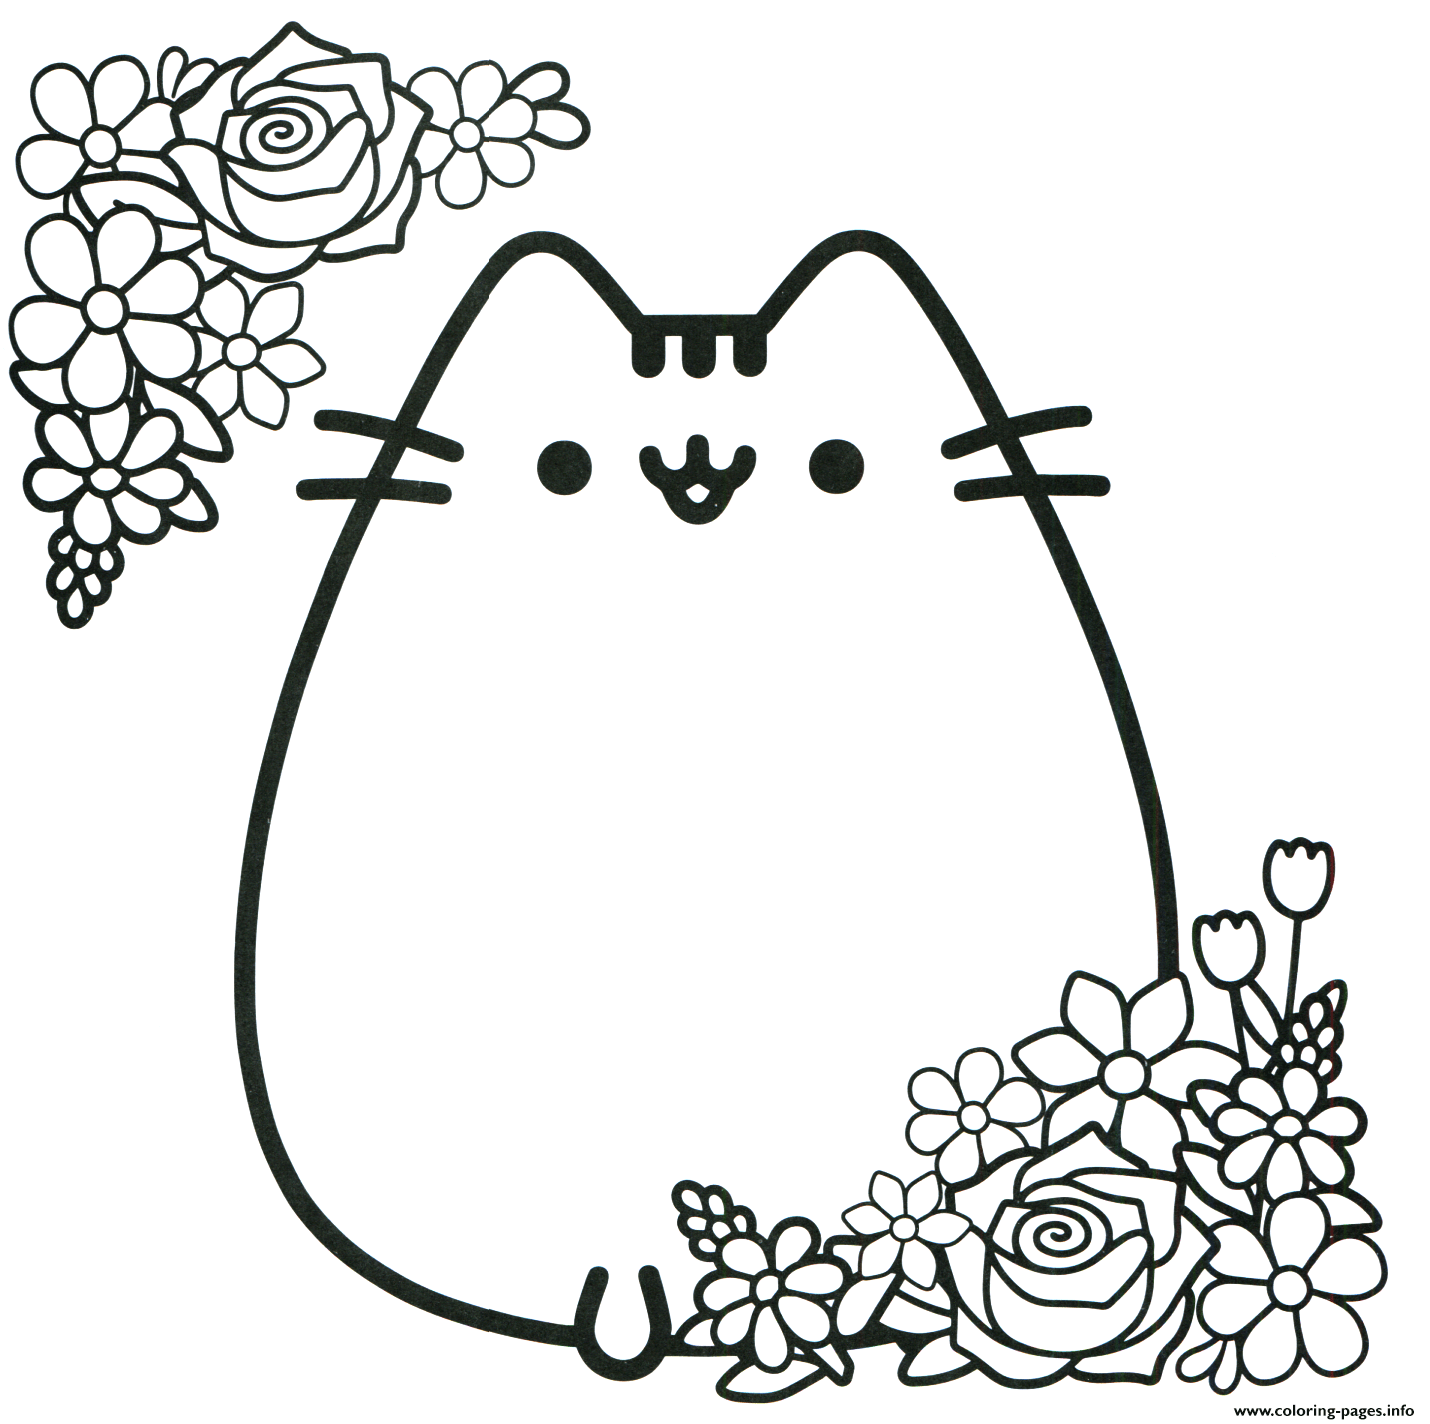 Grab Your New Coloring Pages Info For You Https Gethighit Com New Coloring Pages Info For You Pusheen Coloring Pages Cat Coloring Page Cute Coloring Pages